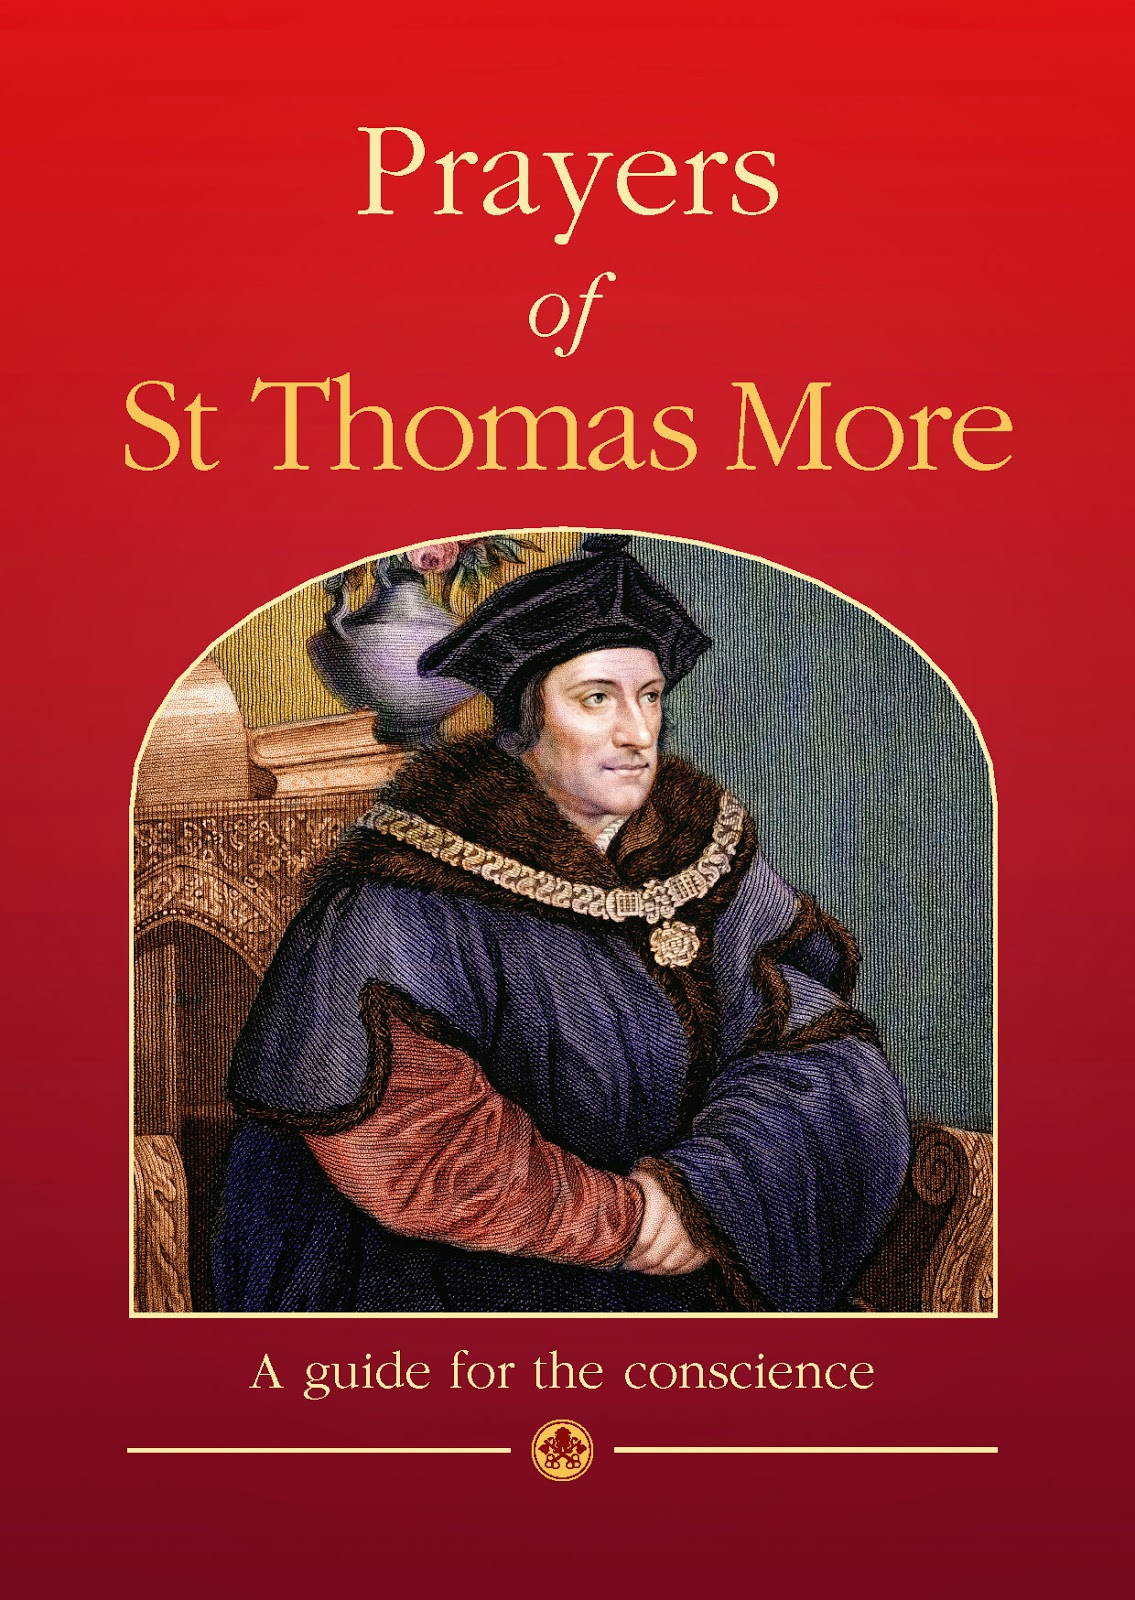 Sir Thomas More Death : thomas, death, Supremacy, Survival:, English, Reformation:, Thomas, Faces, Death: